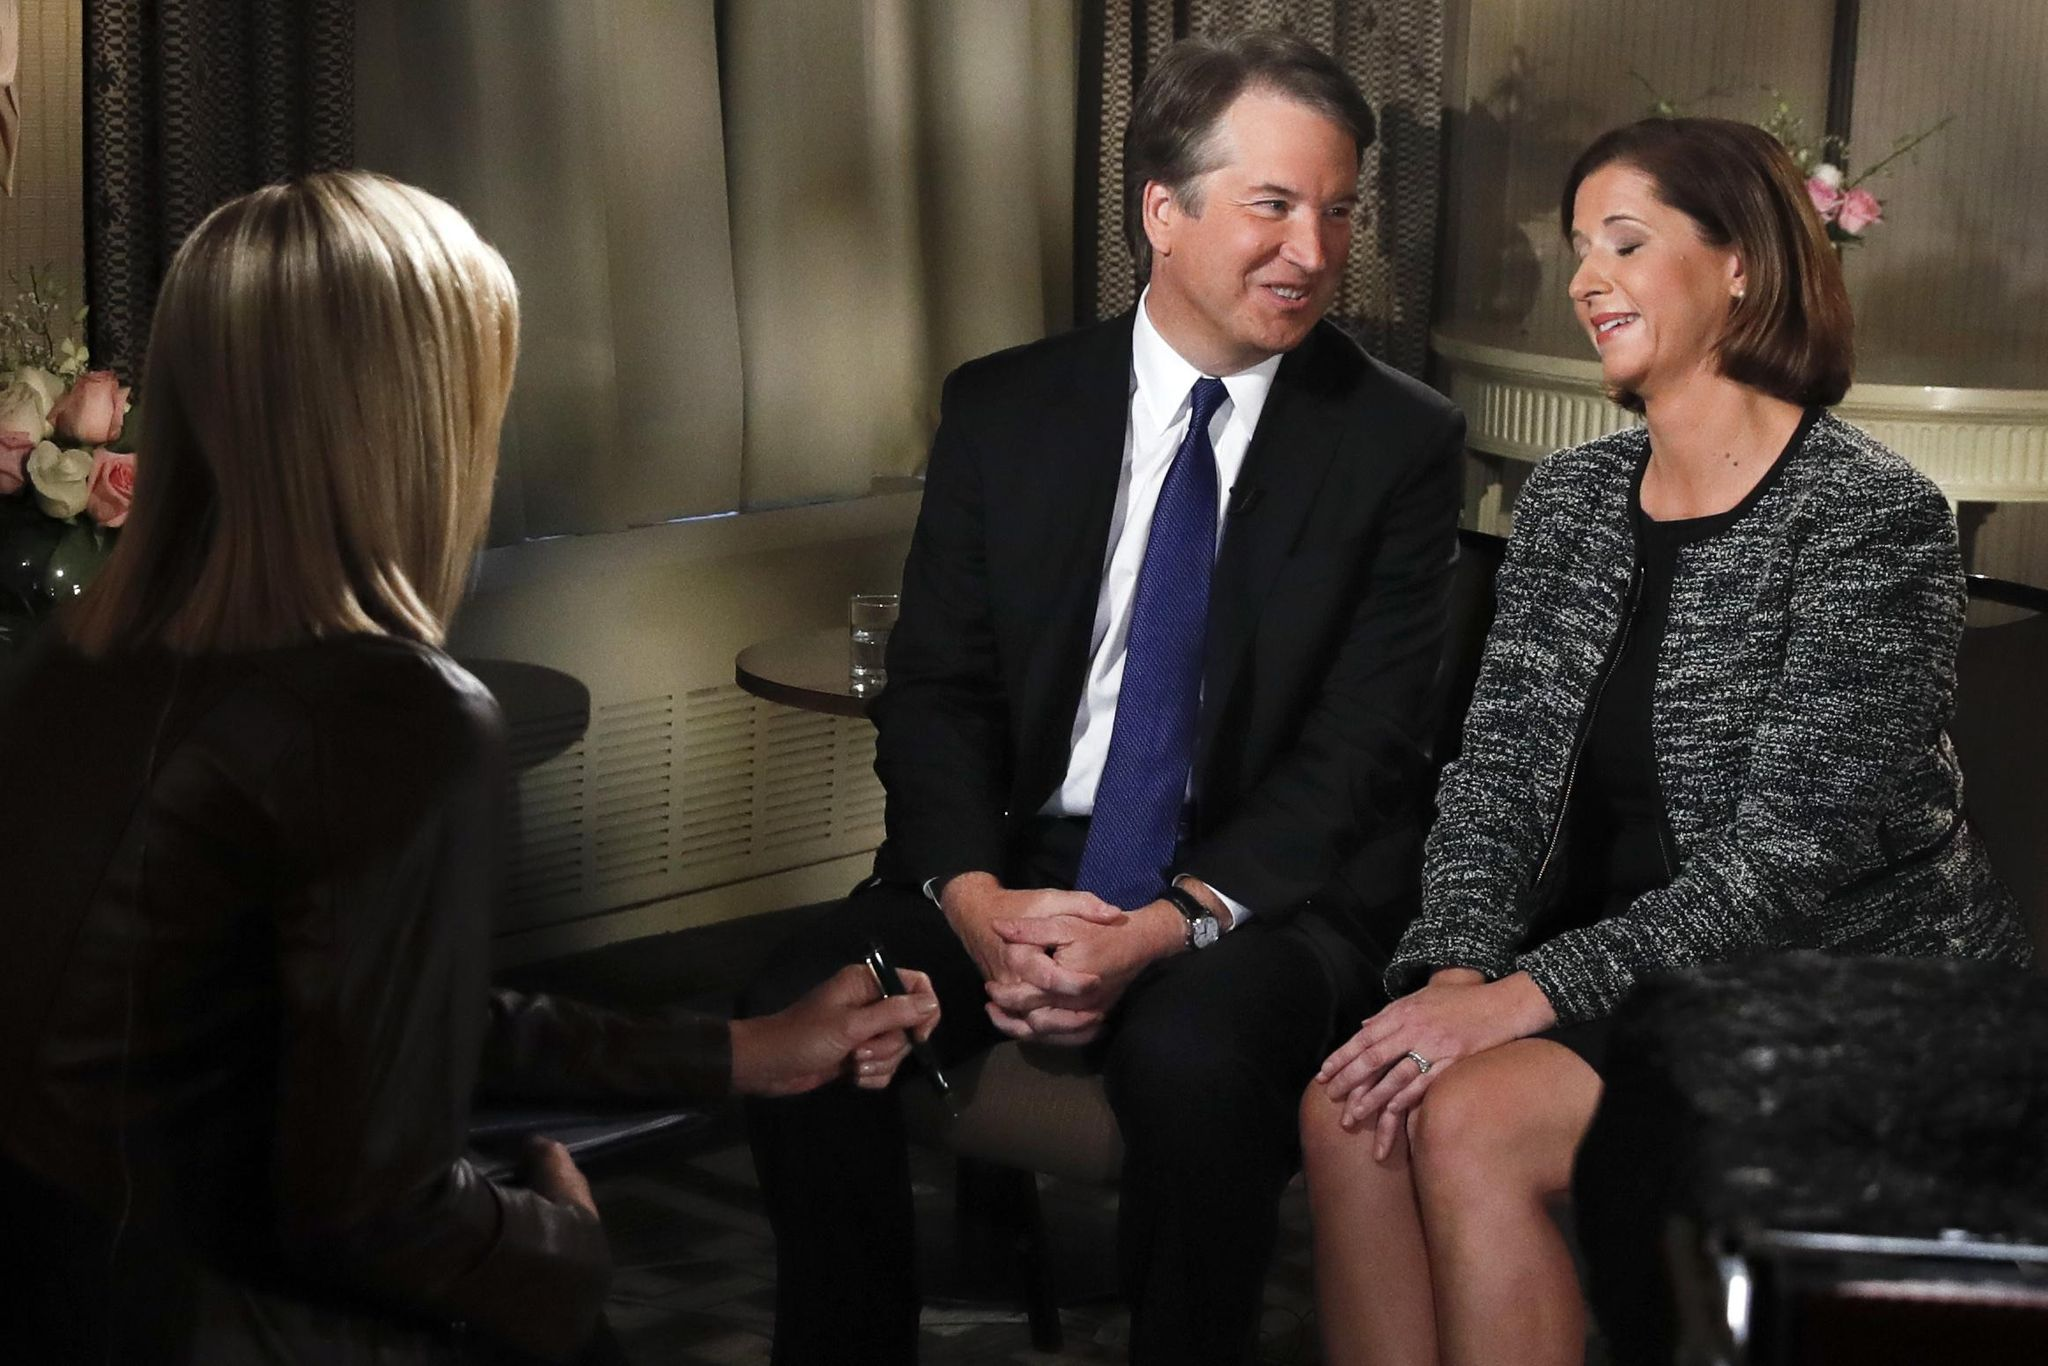 In TV interview, Kavanaugh denies sexually assaulting anyone - Washington Times